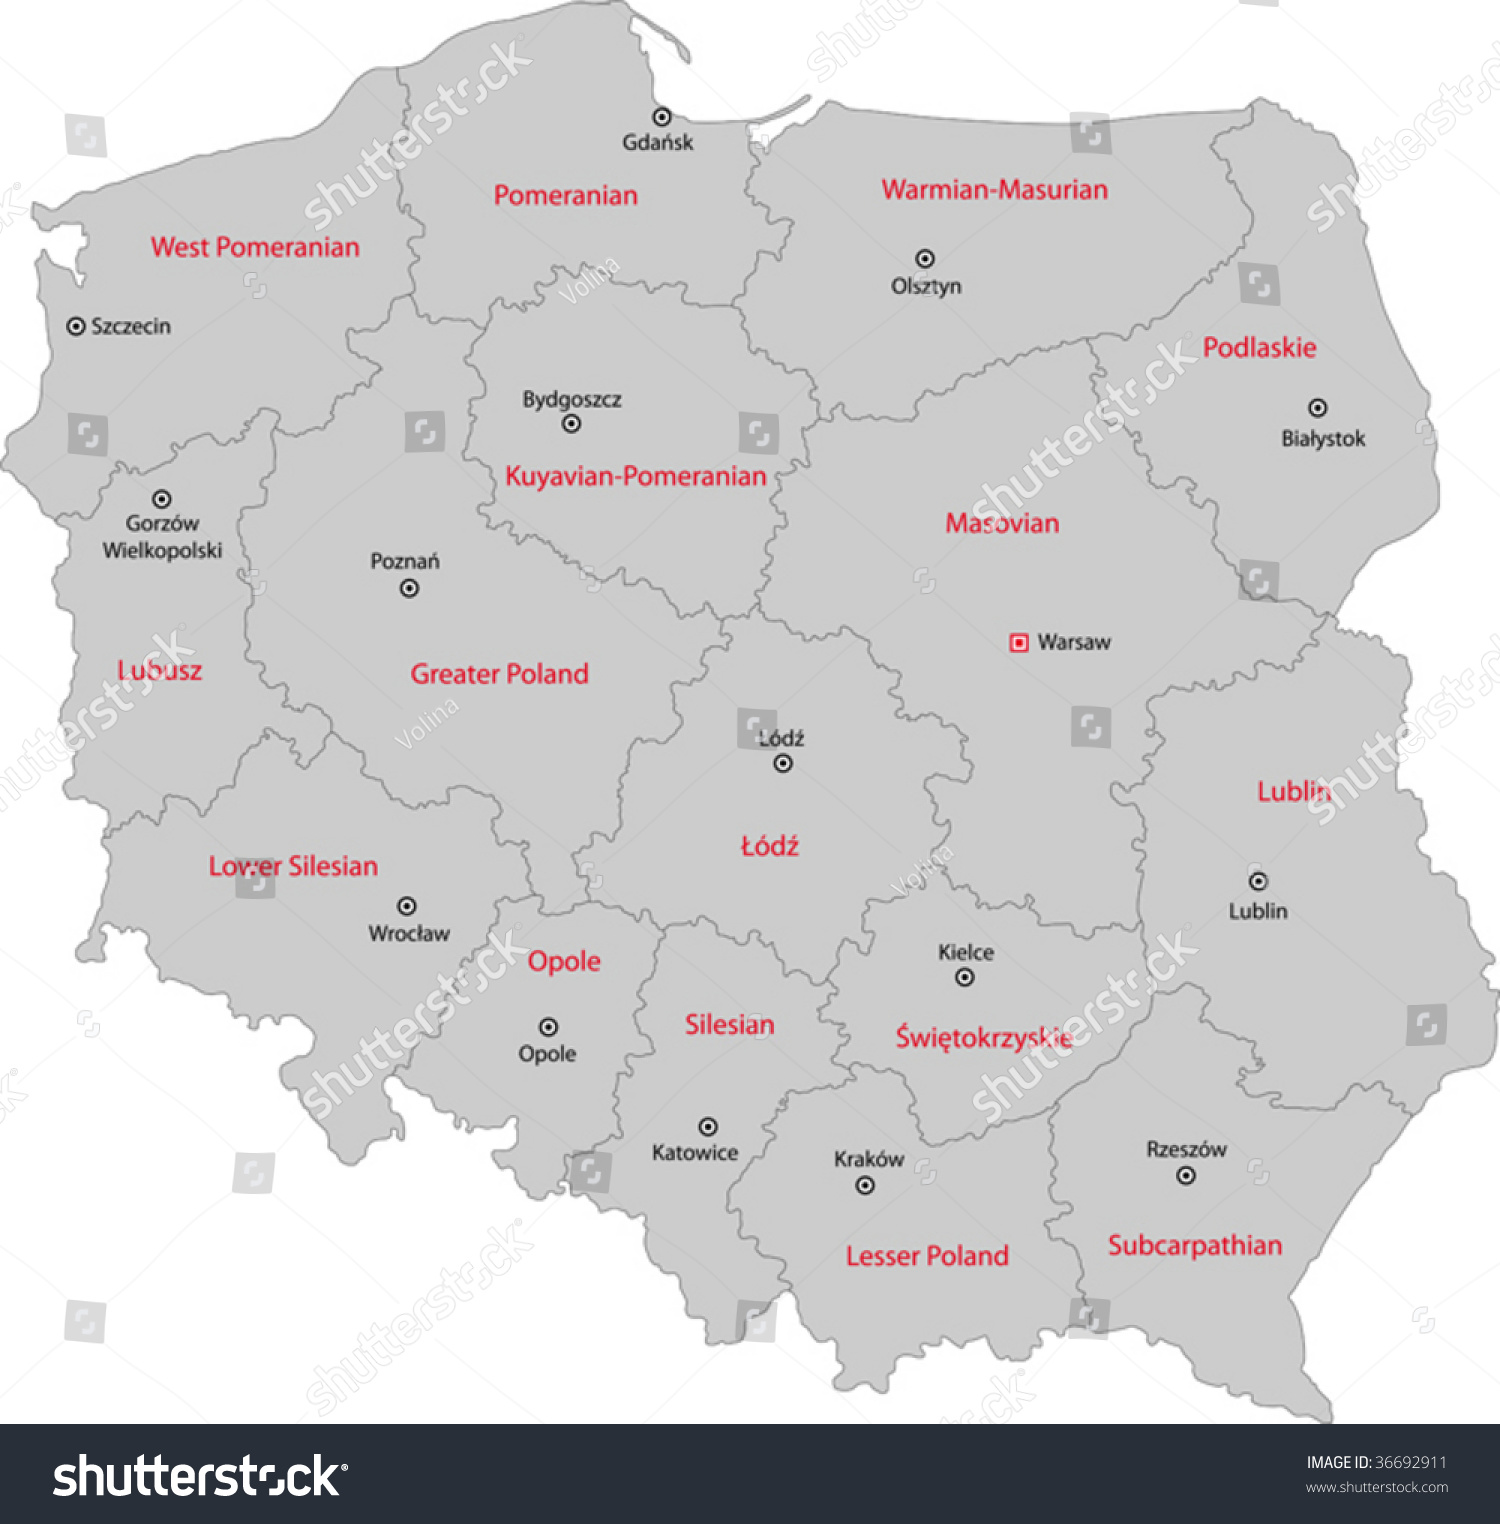 Map administrative divisions poland capital cities stock vector map of administrative divisions of poland with capital cities sciox Gallery